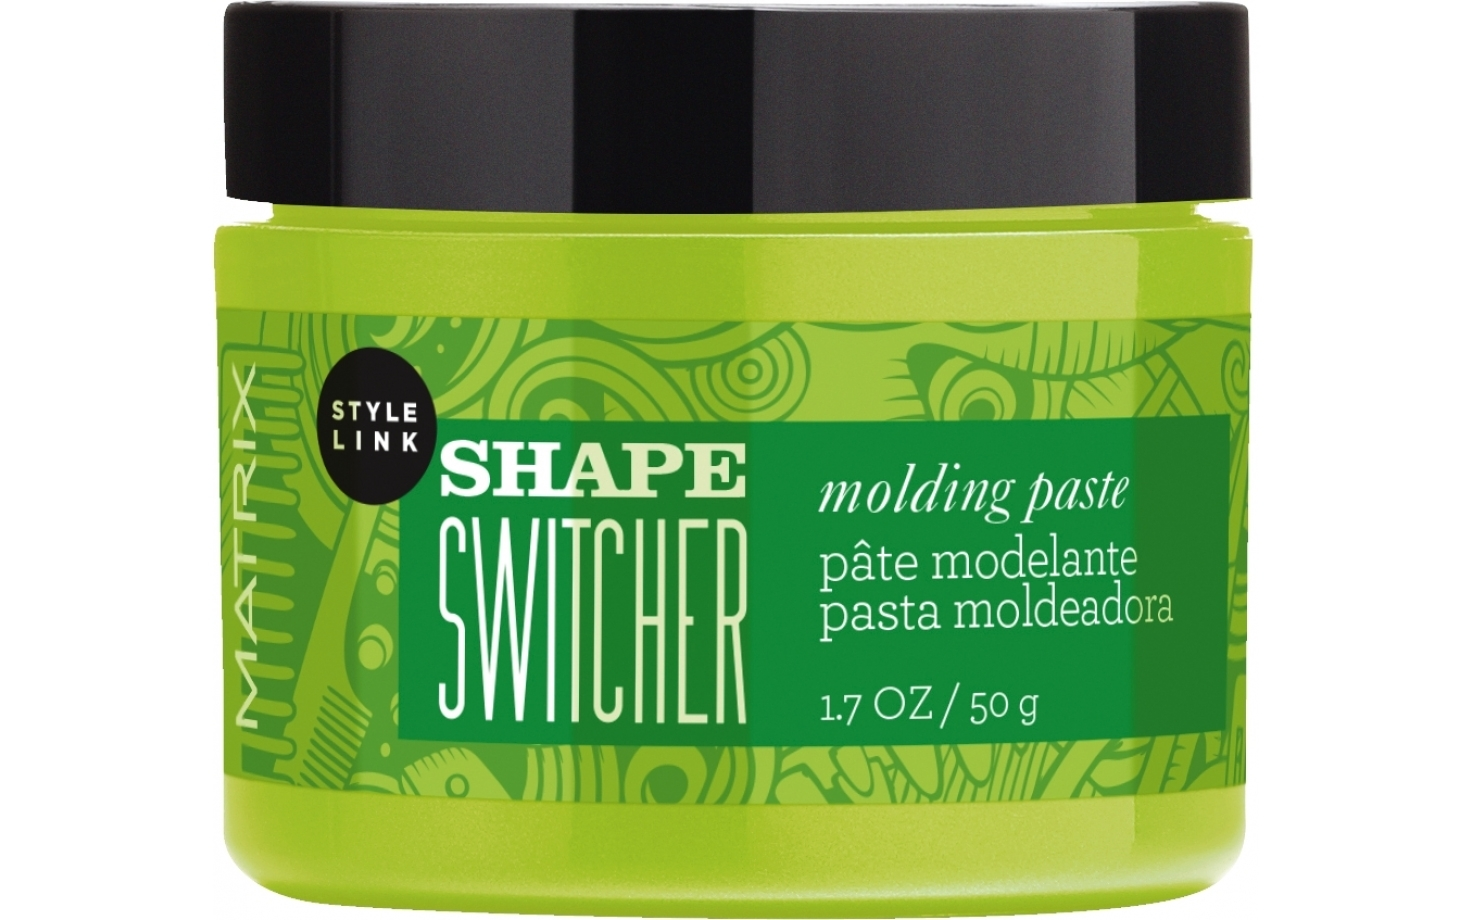 Style Link Shape Switcher